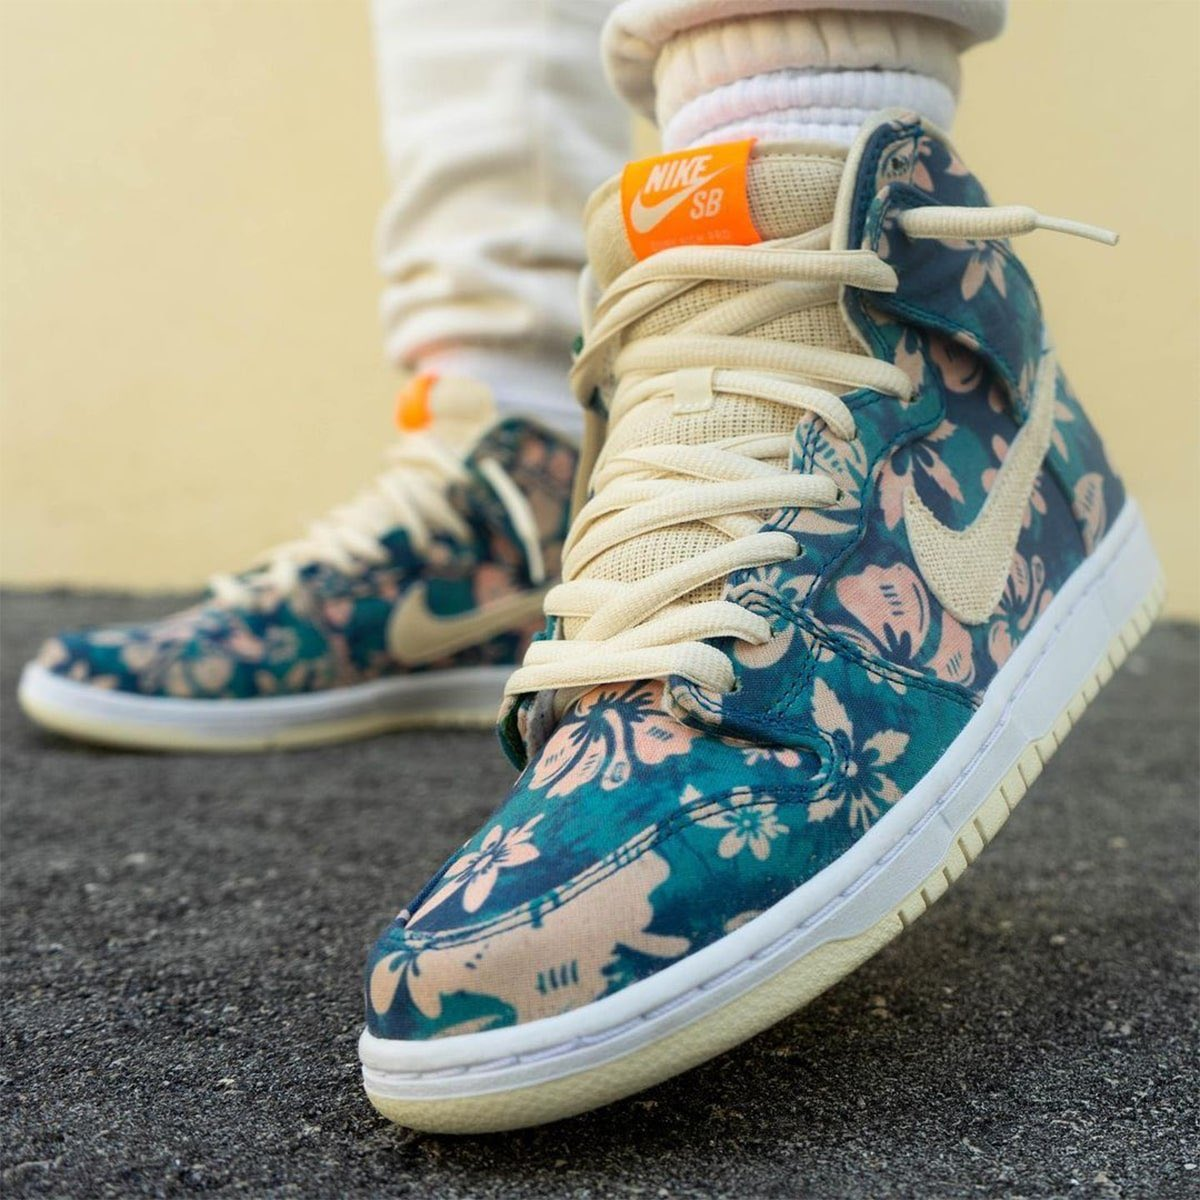 """Nike SB has a """"Hawaii"""" Dunk High coming in this year. 🌺🏝"""